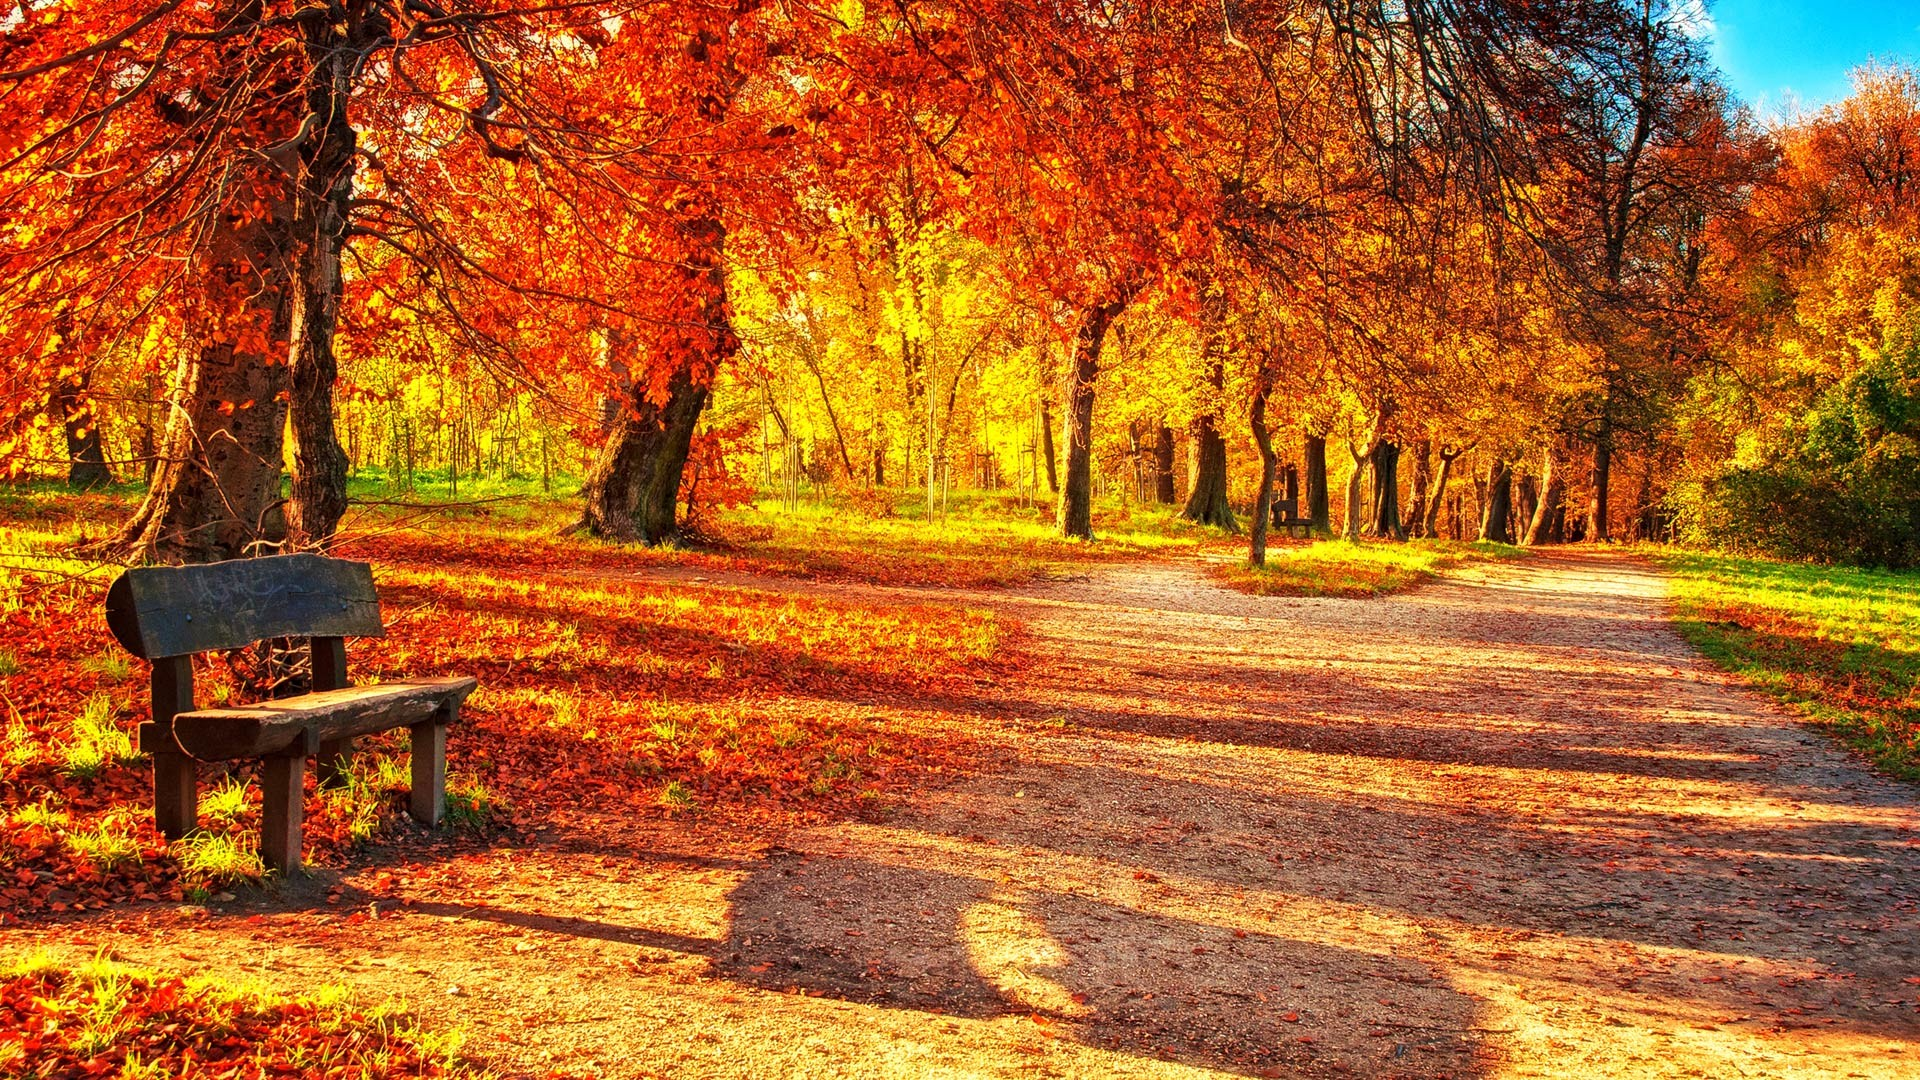 1920x1080 Download Autumn Leaves Wallpaper Desktop #x0ray » hdxwallpaperz.com